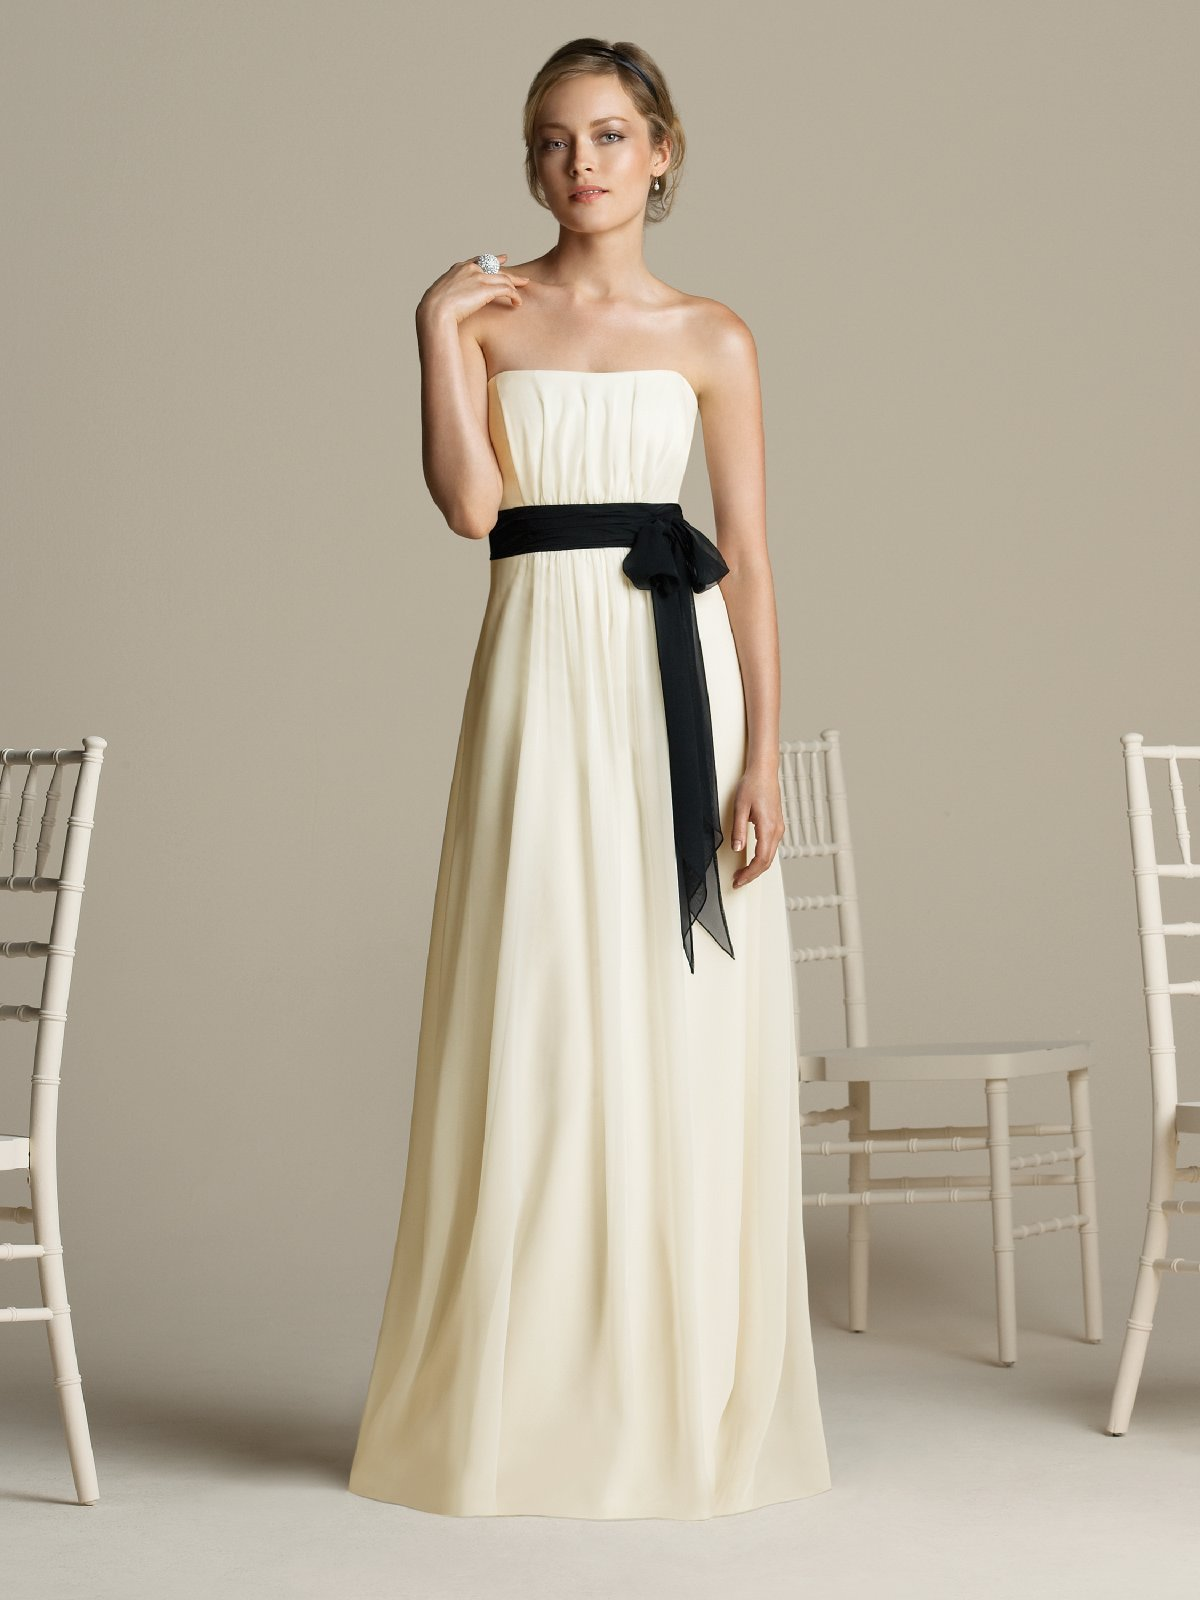 Ivory Empire Strapless Zipper Floor Length Draped Chiffon Prom Dresses With Black Sash